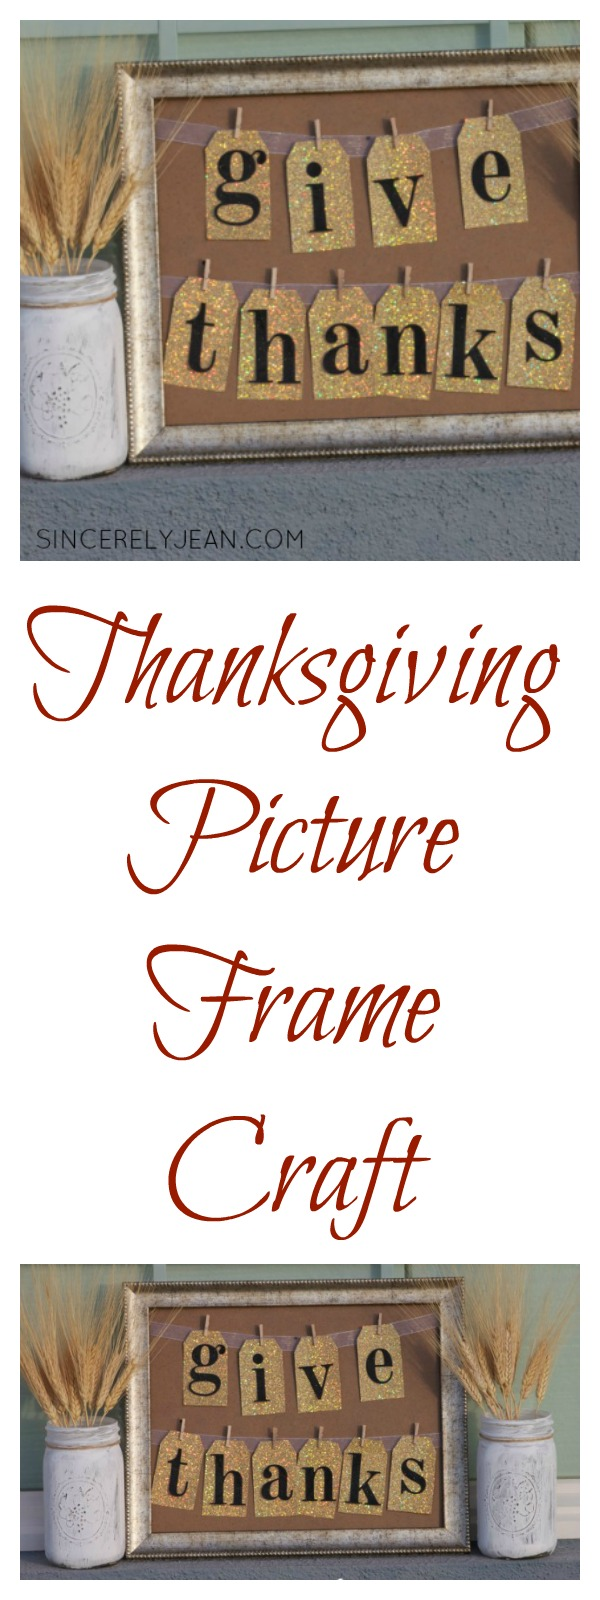 Thanksgiving_Picture_Frame_Craft